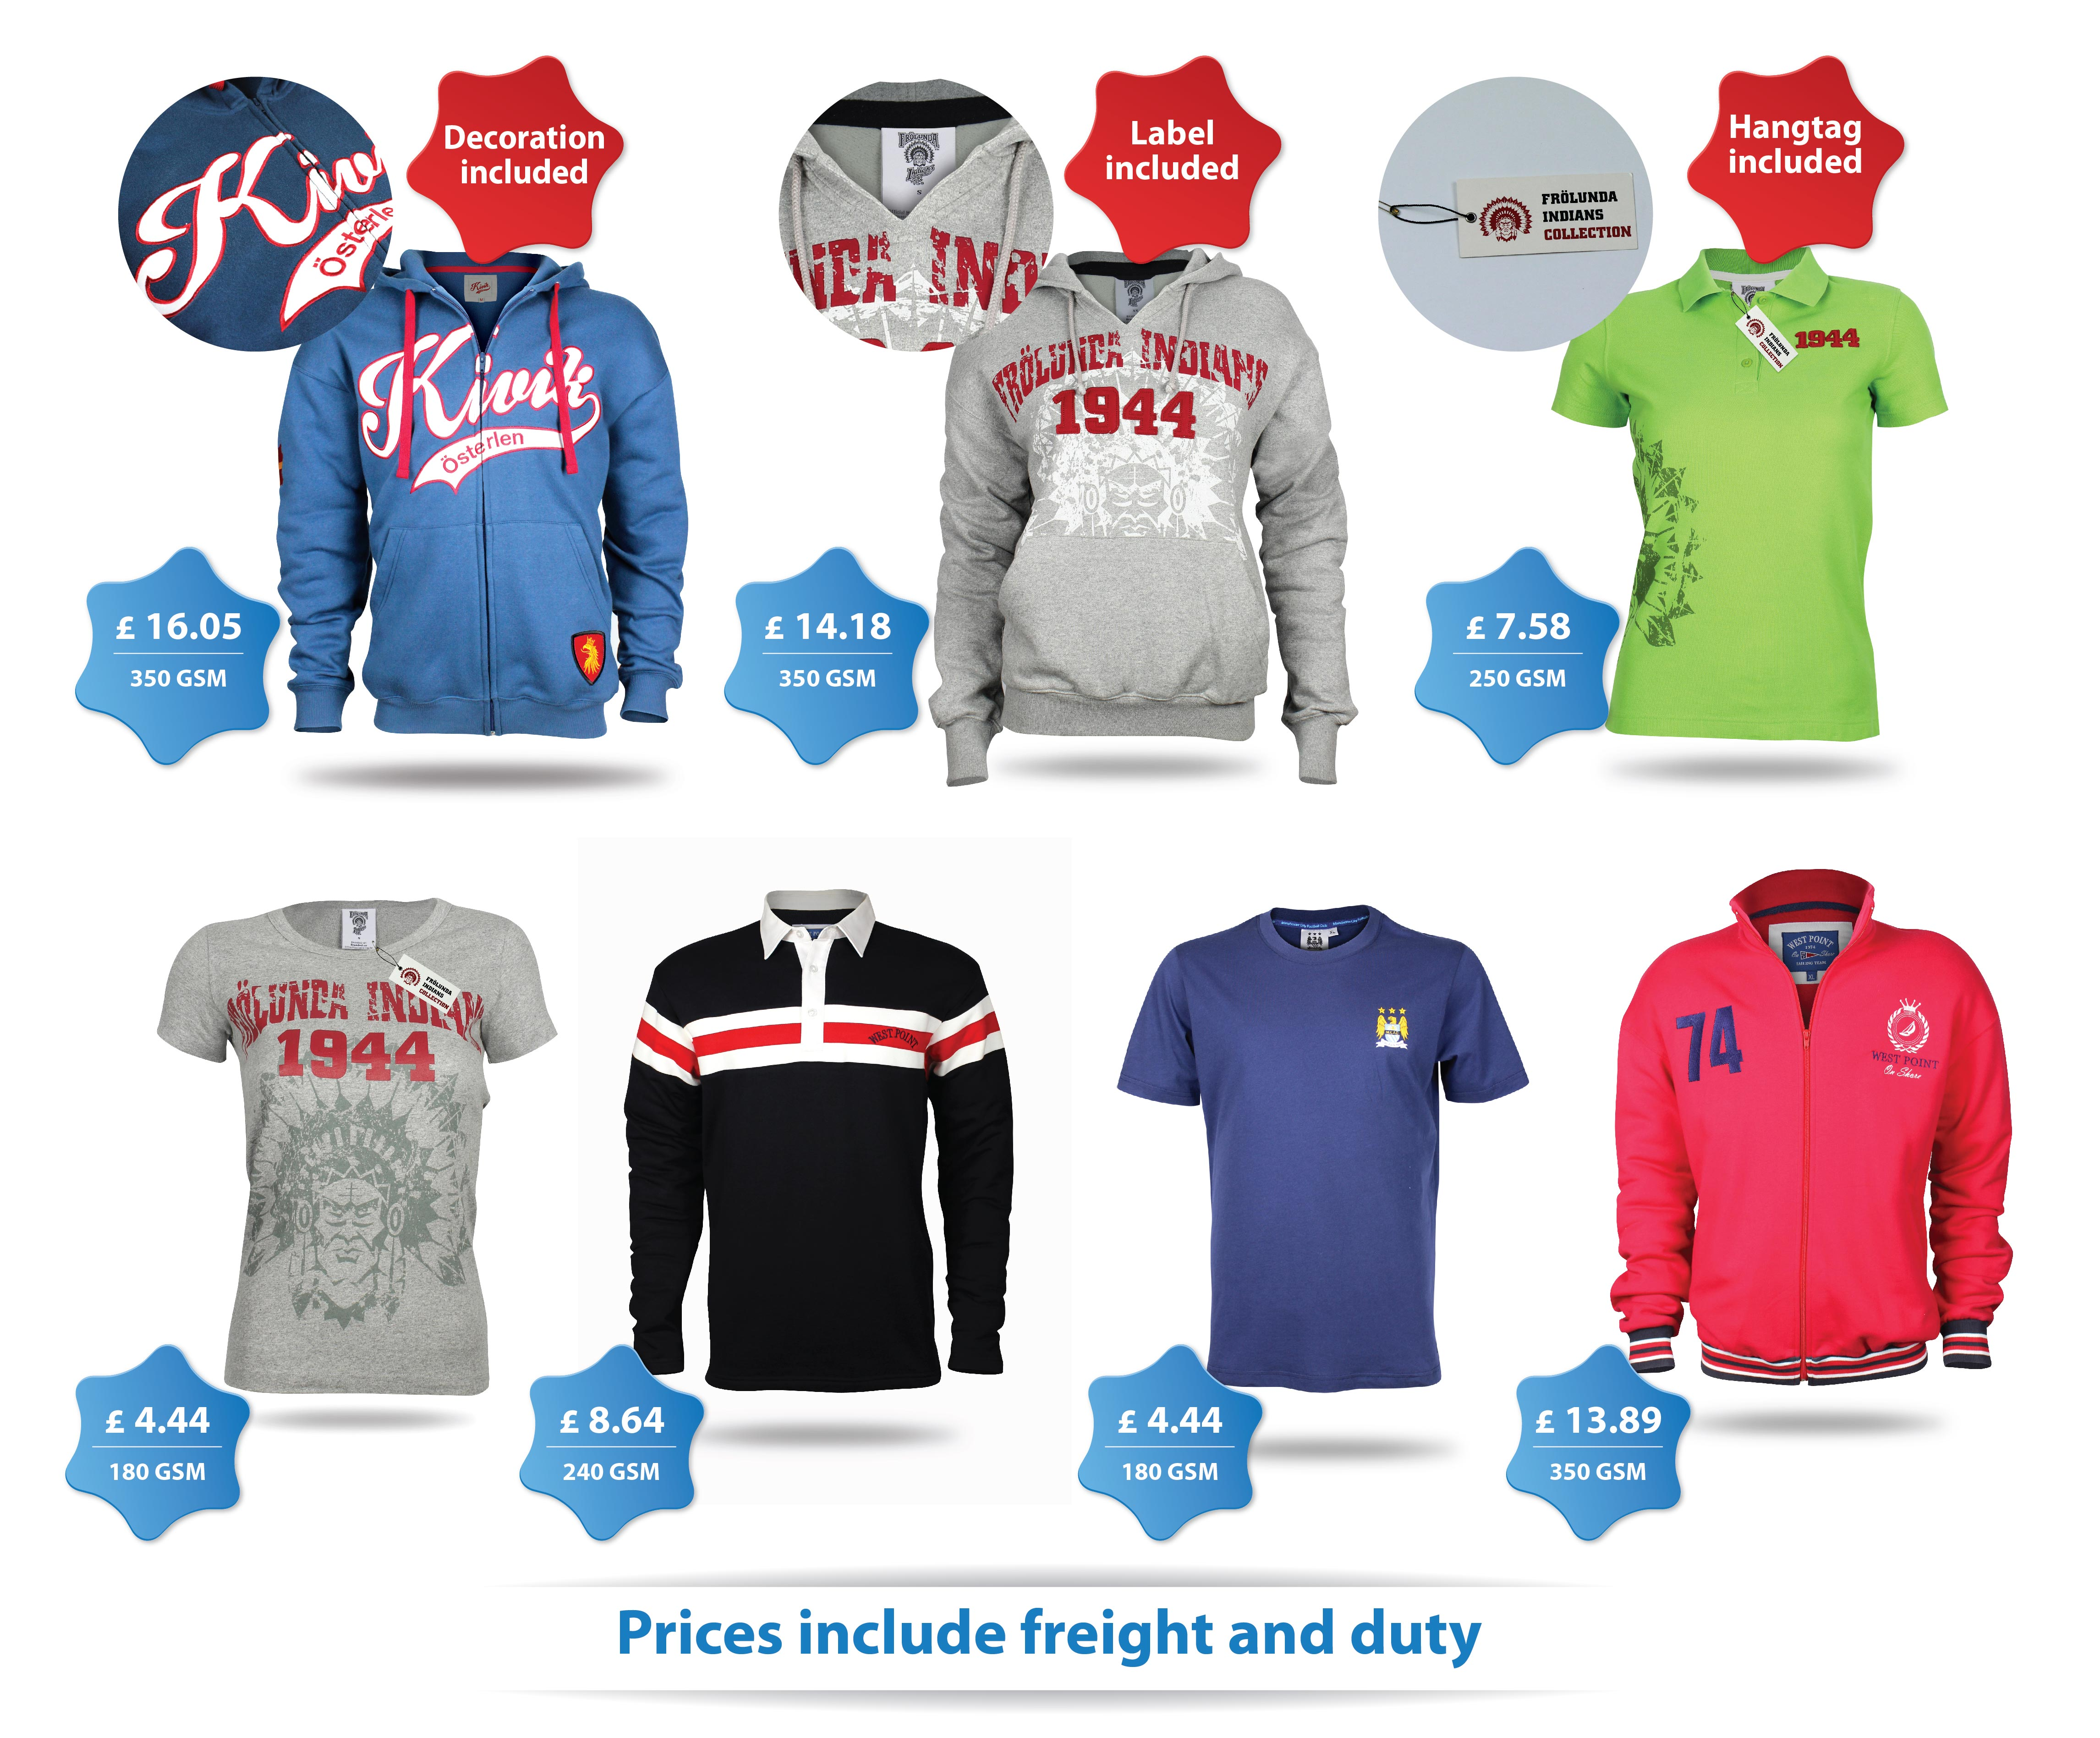 this image shows examples of merchandise for sport clubs